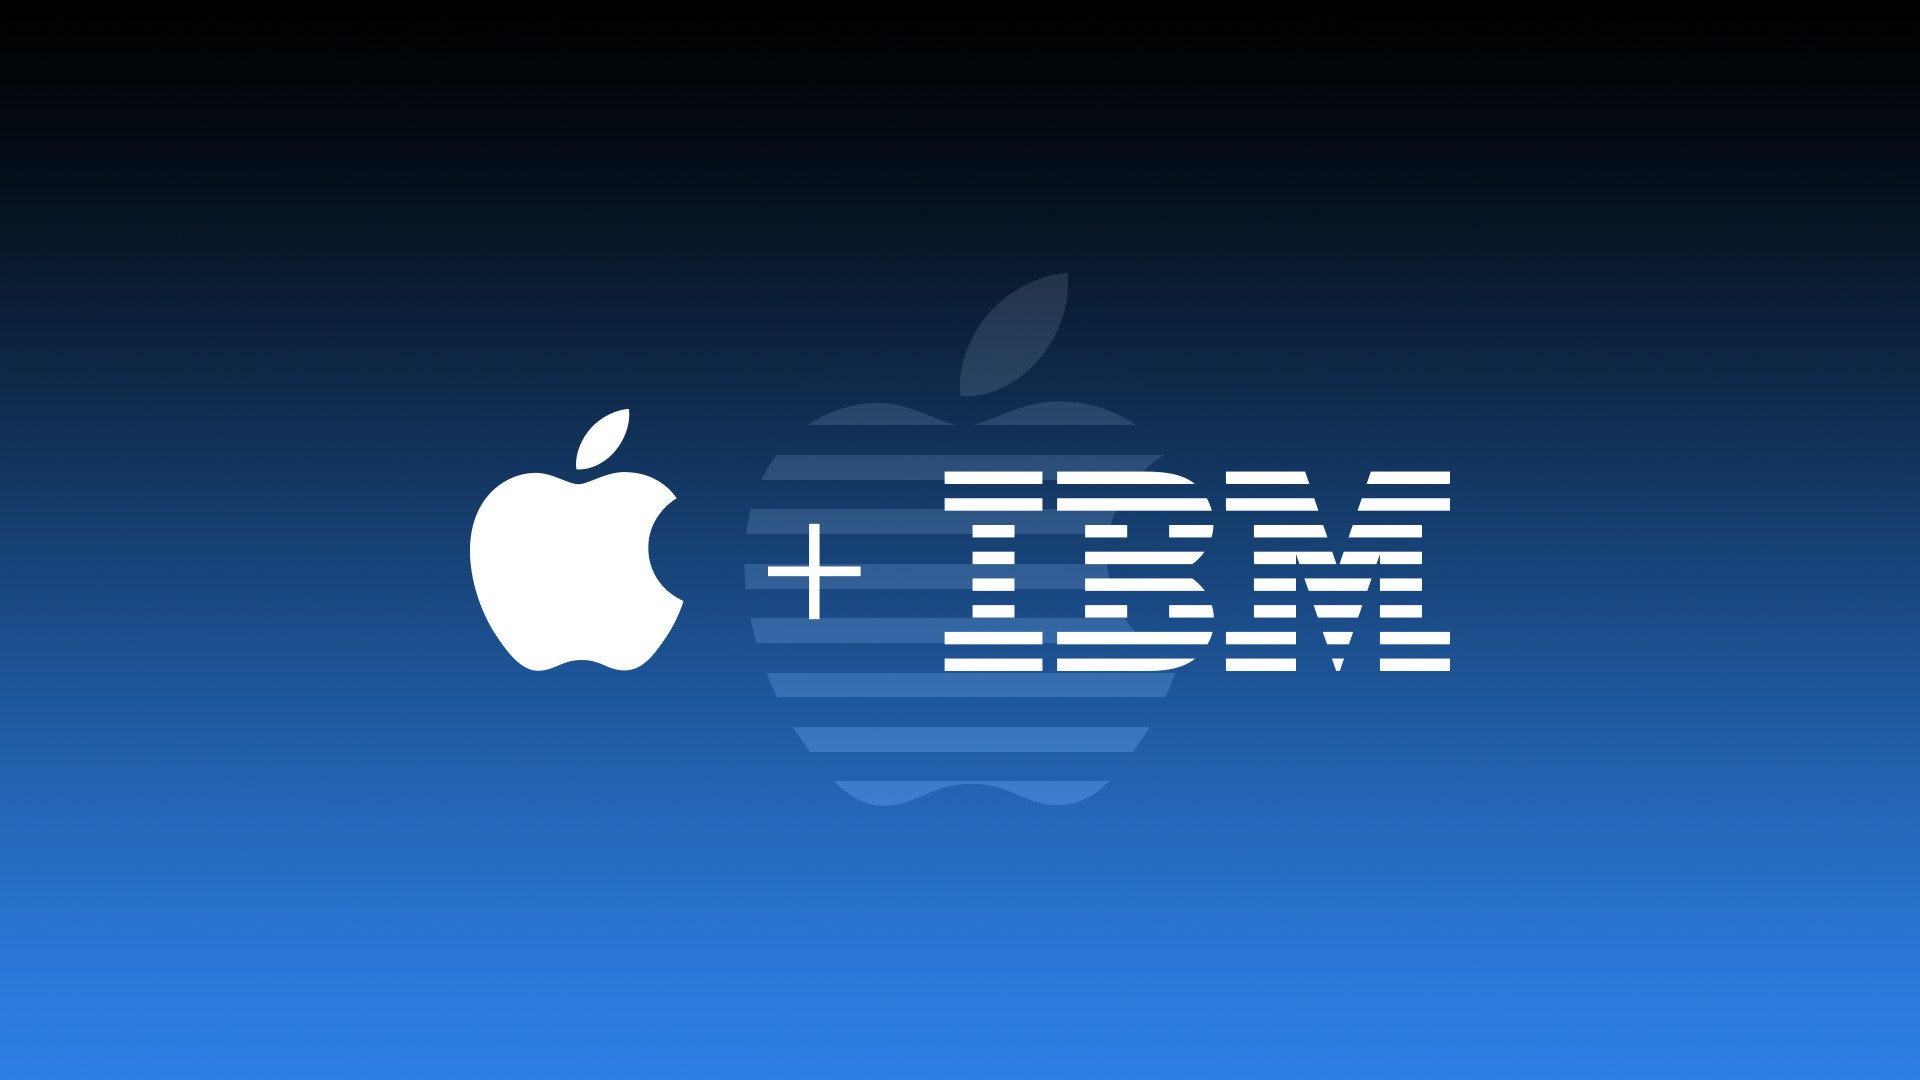 1920x1080 Ibm Watson Wallpaper Killing xml authoring with ibm apples jay